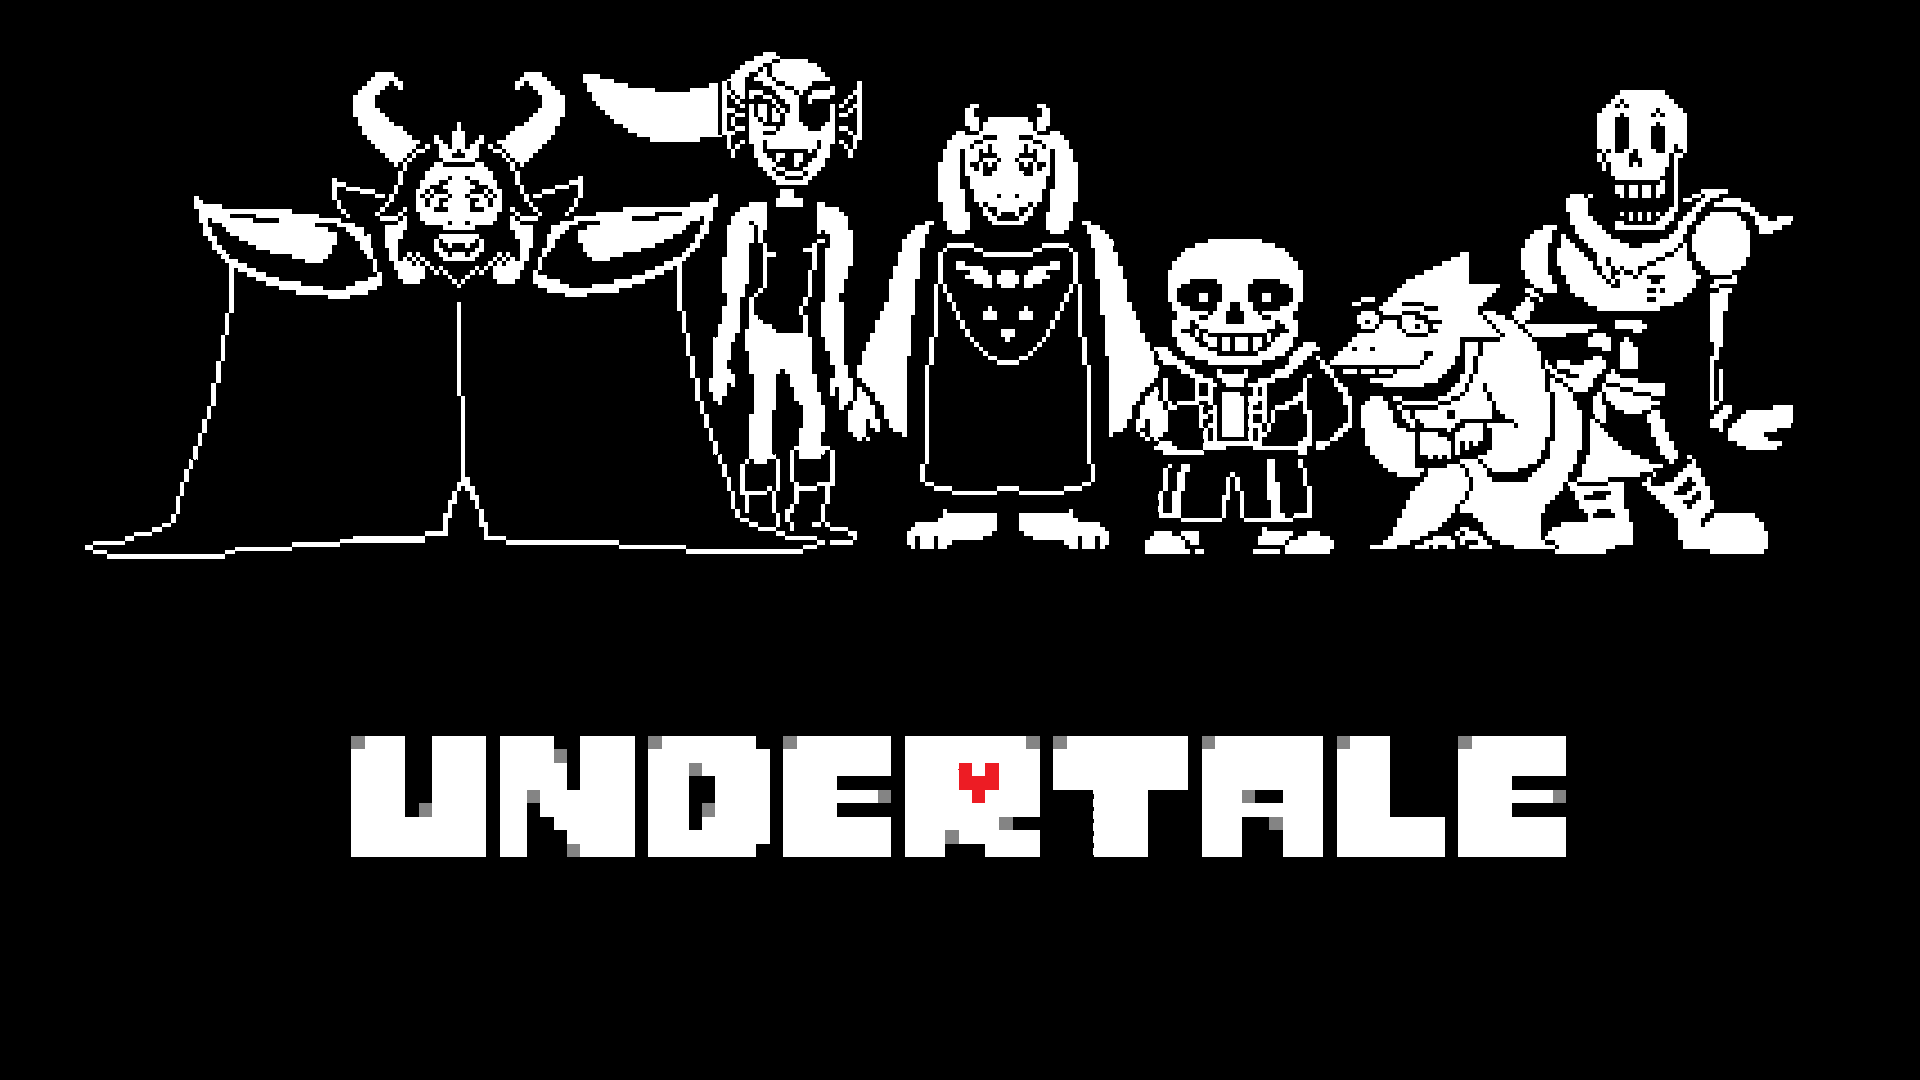 Undertale dating start phoenix wright